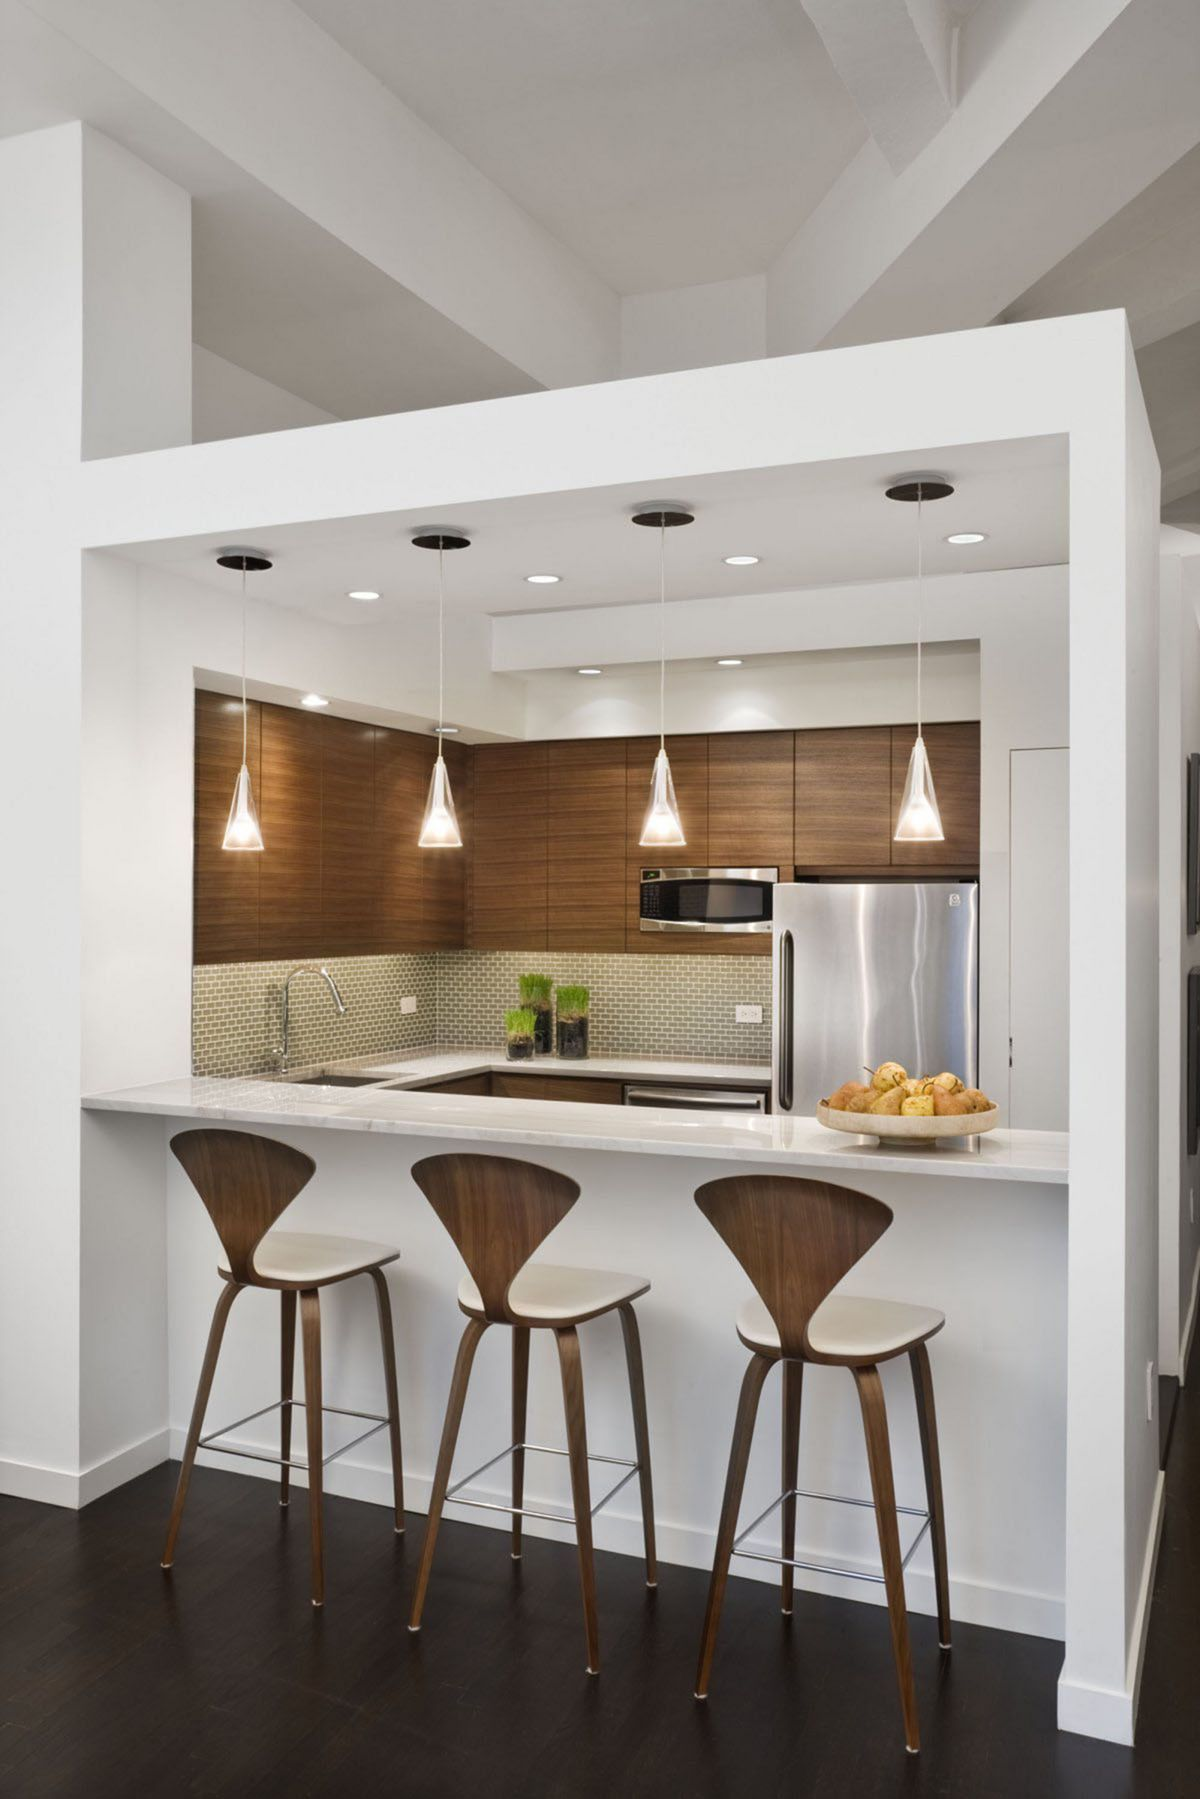 The Best 65 Amazing Small Modern Kitchen Design Ideas Https Decoor Net 65 Amazing Small Modern Kitchen Bar Design Kitchen Remodel Small Kitchen Design Small